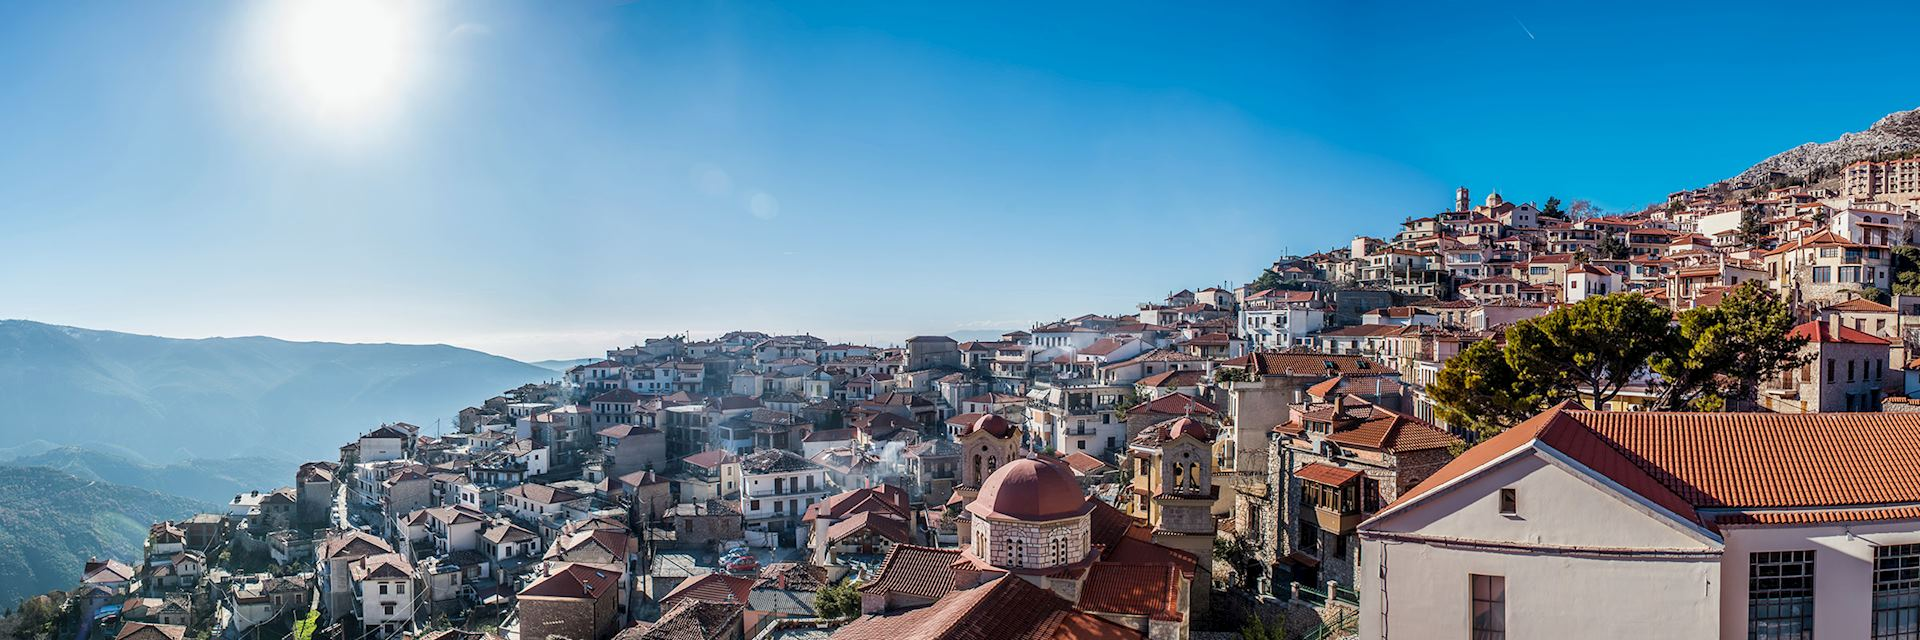 Arachova, Mount Parnassus, Greece